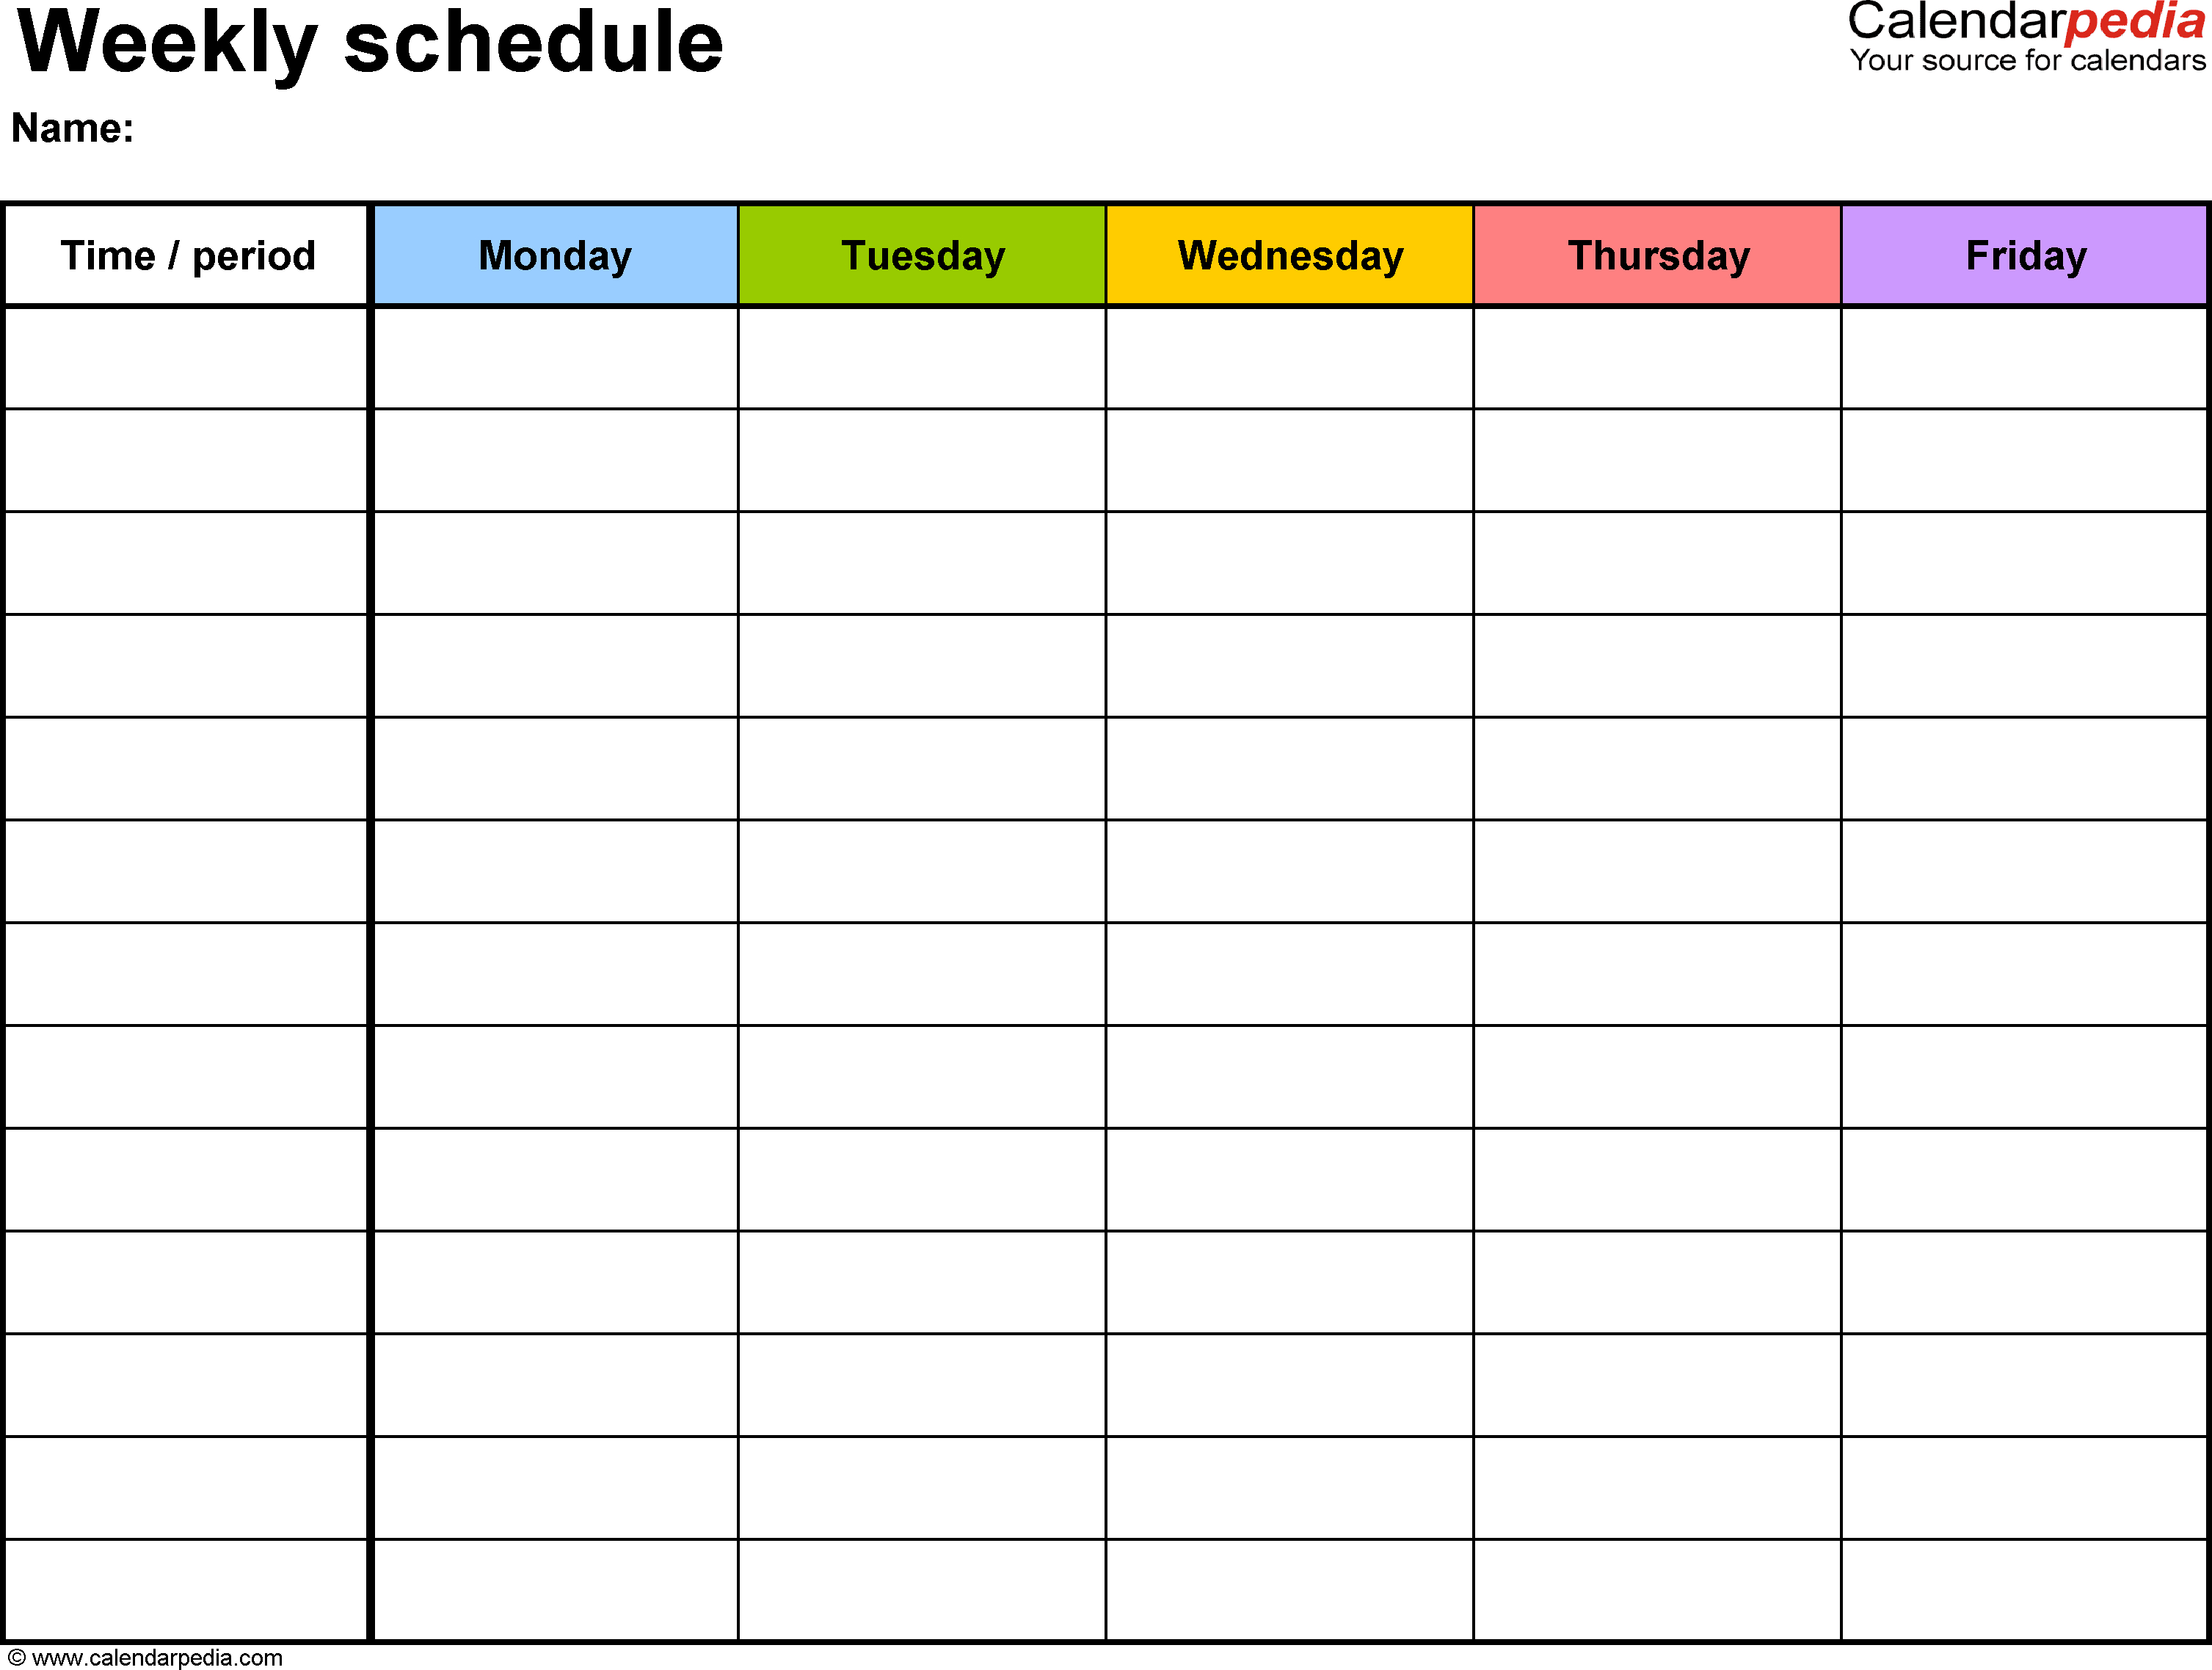 Free Weekly Schedule Templates For Excel - 18 Templates inside Calendar Printable Monthly Planner Templates